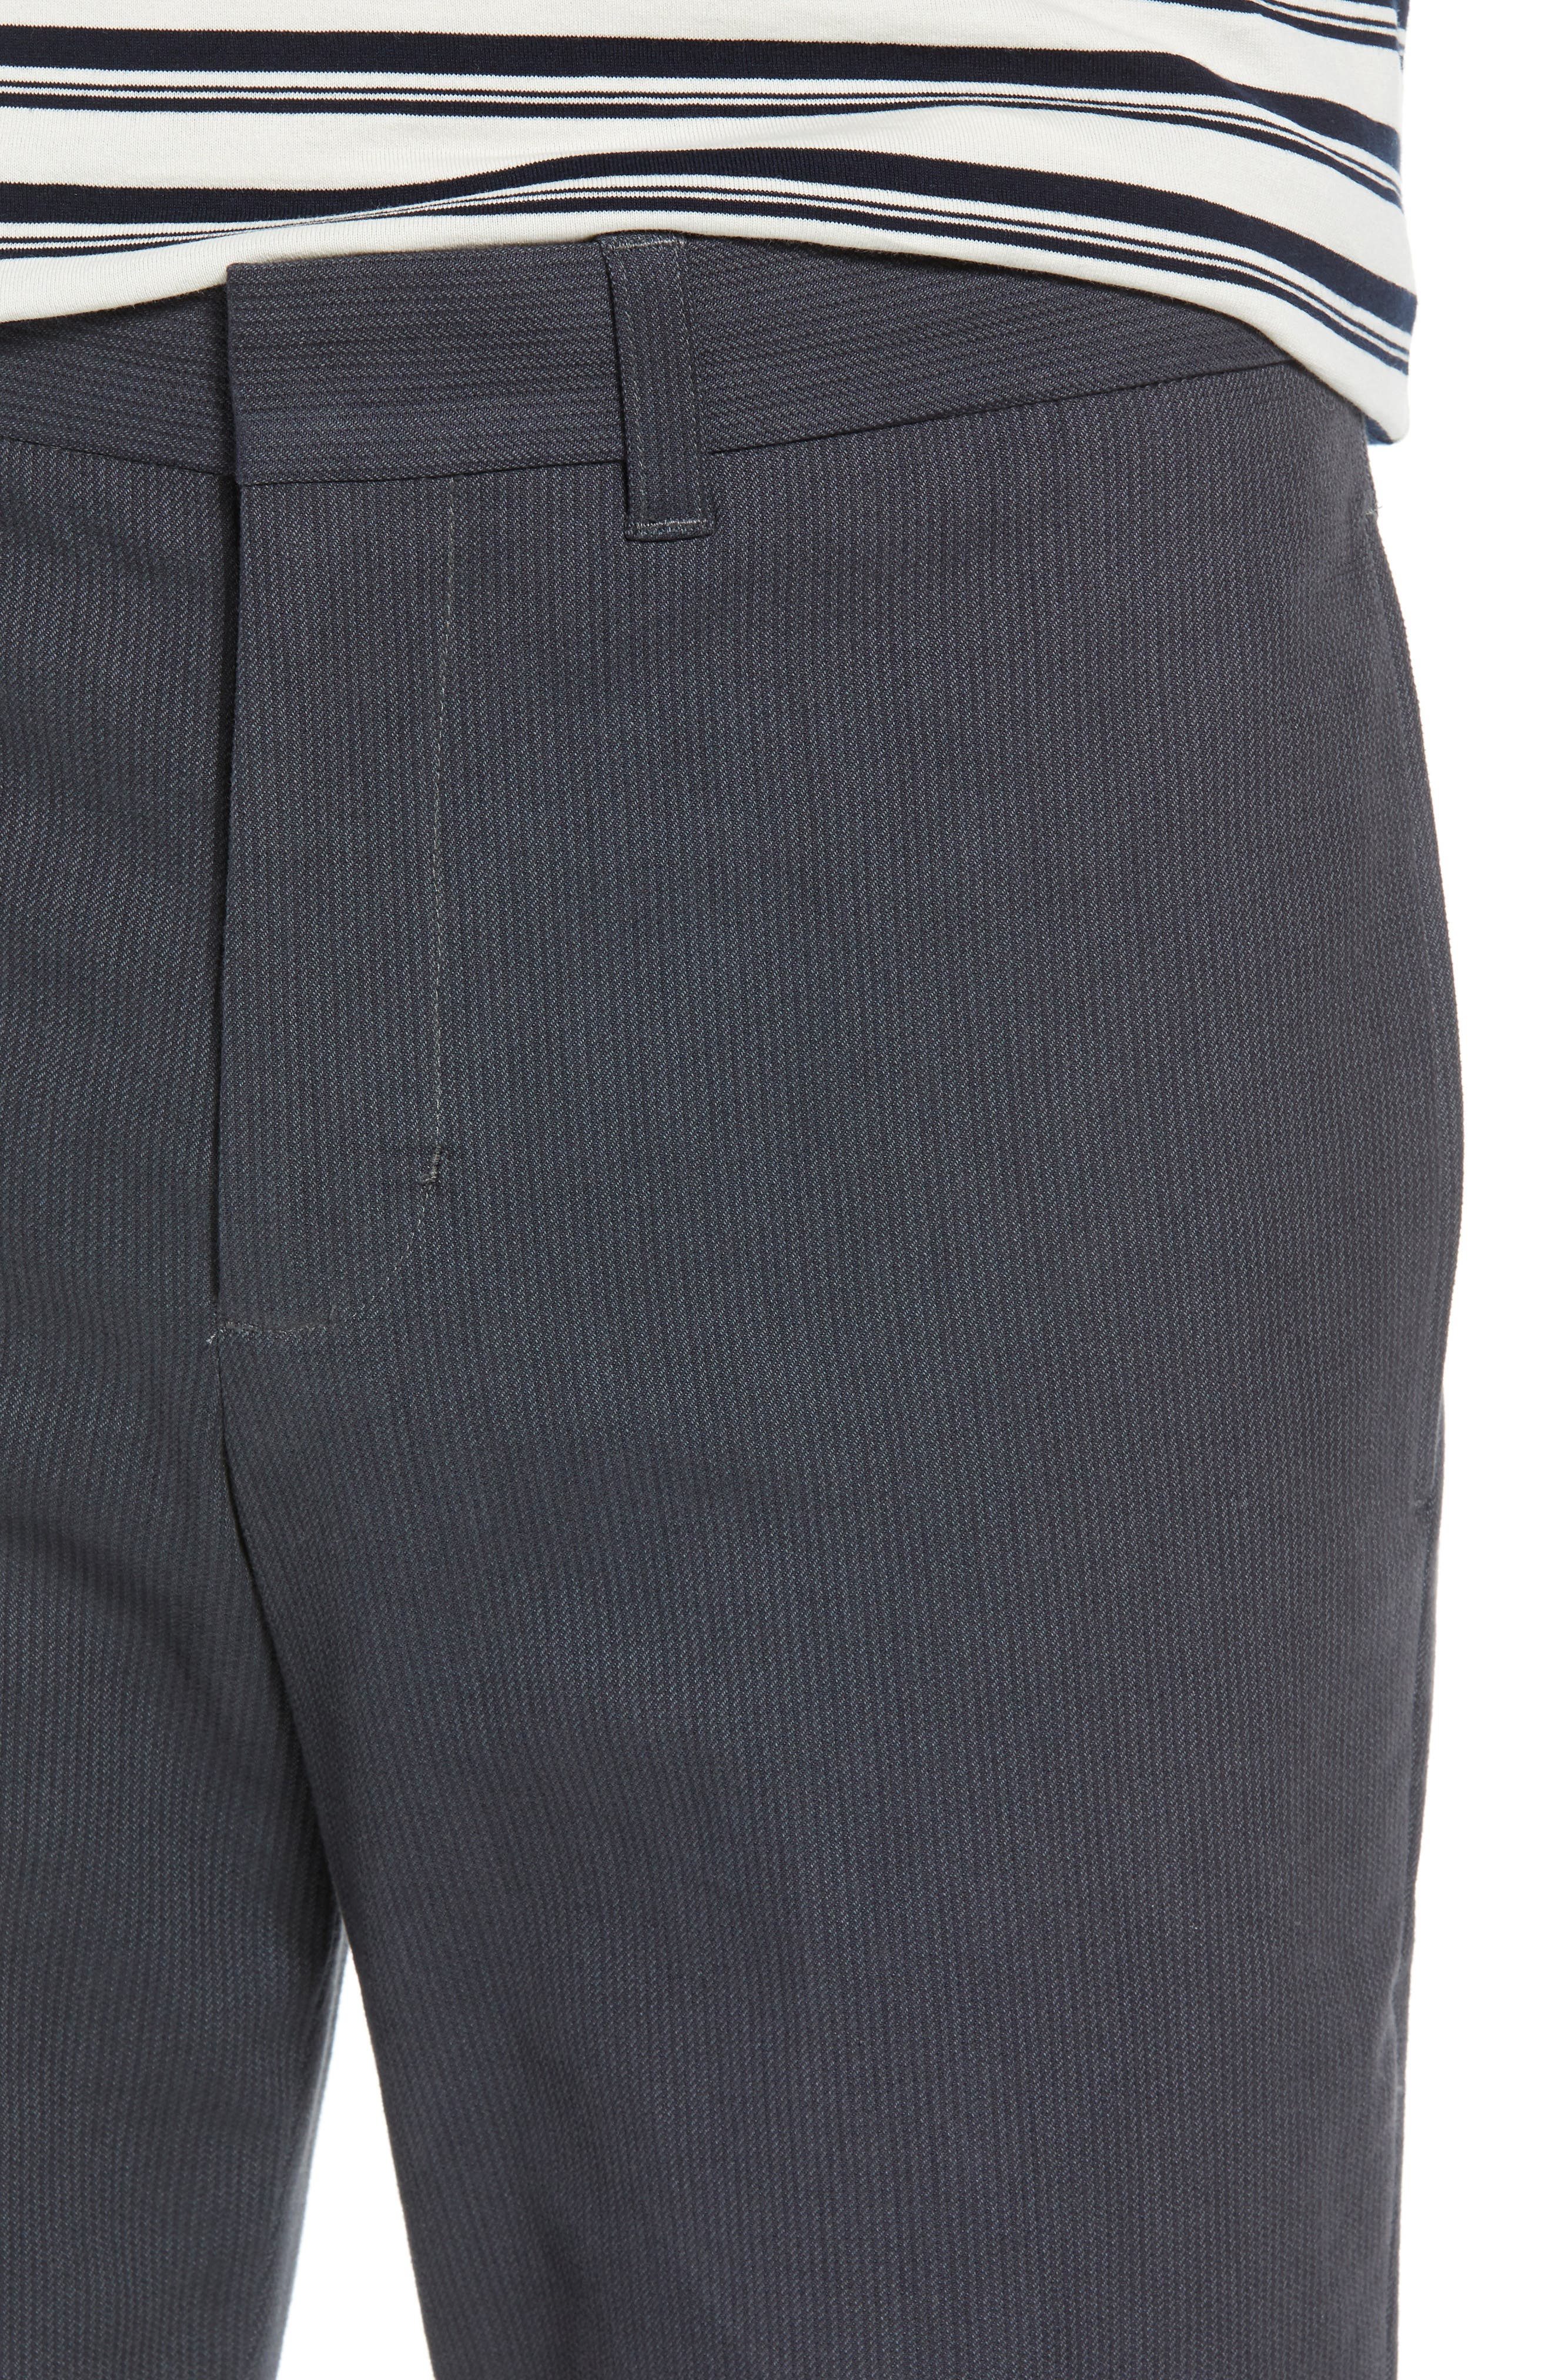 Griffith Slim Fit Chinos,                             Alternate thumbnail 4, color,                             SLATE